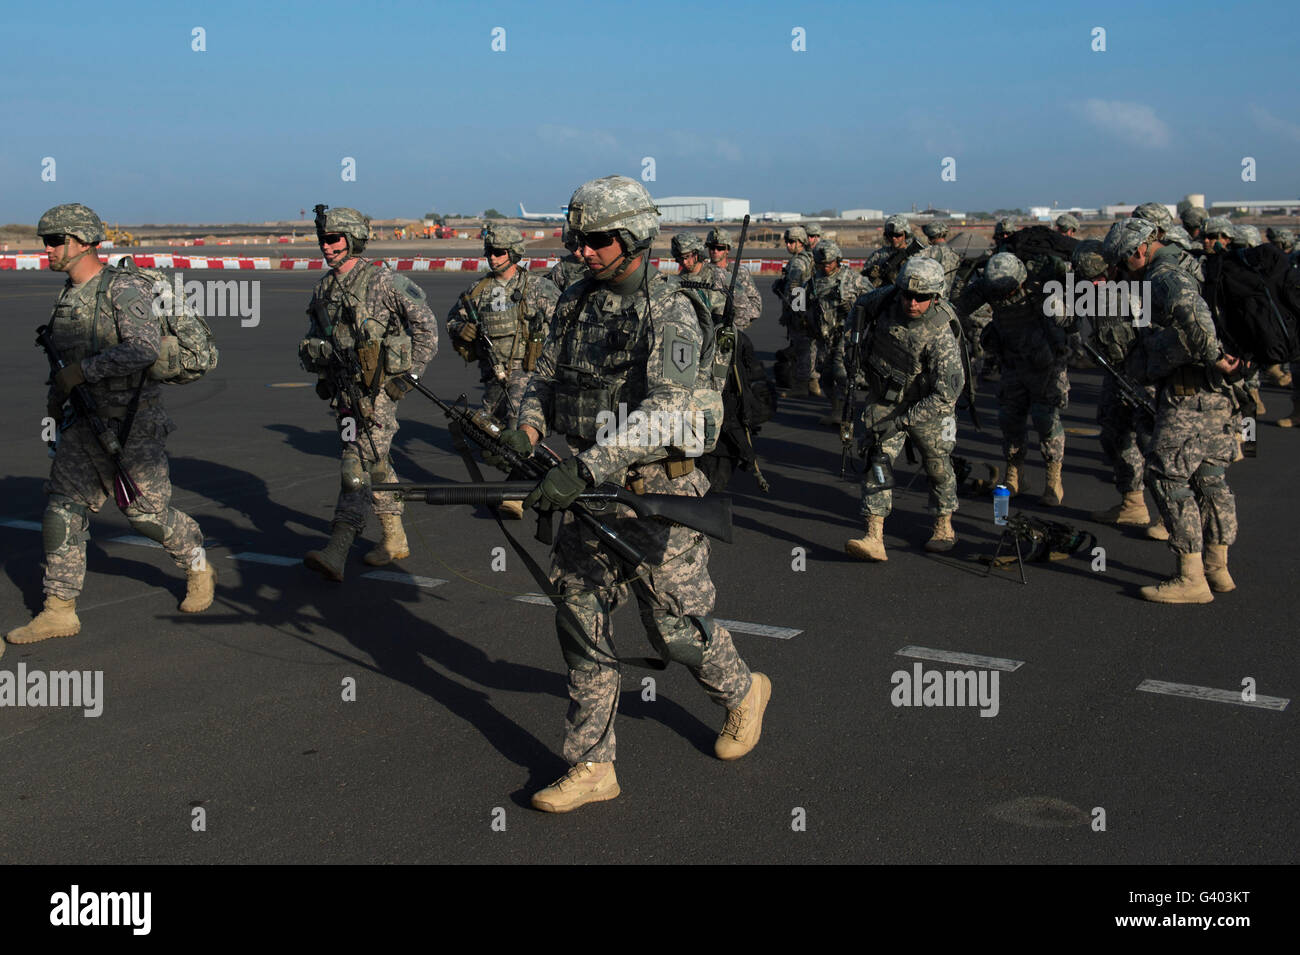 U.S. Soldiers and East Africa Response Force Soldiers at Camp Lemonnier. - Stock Image